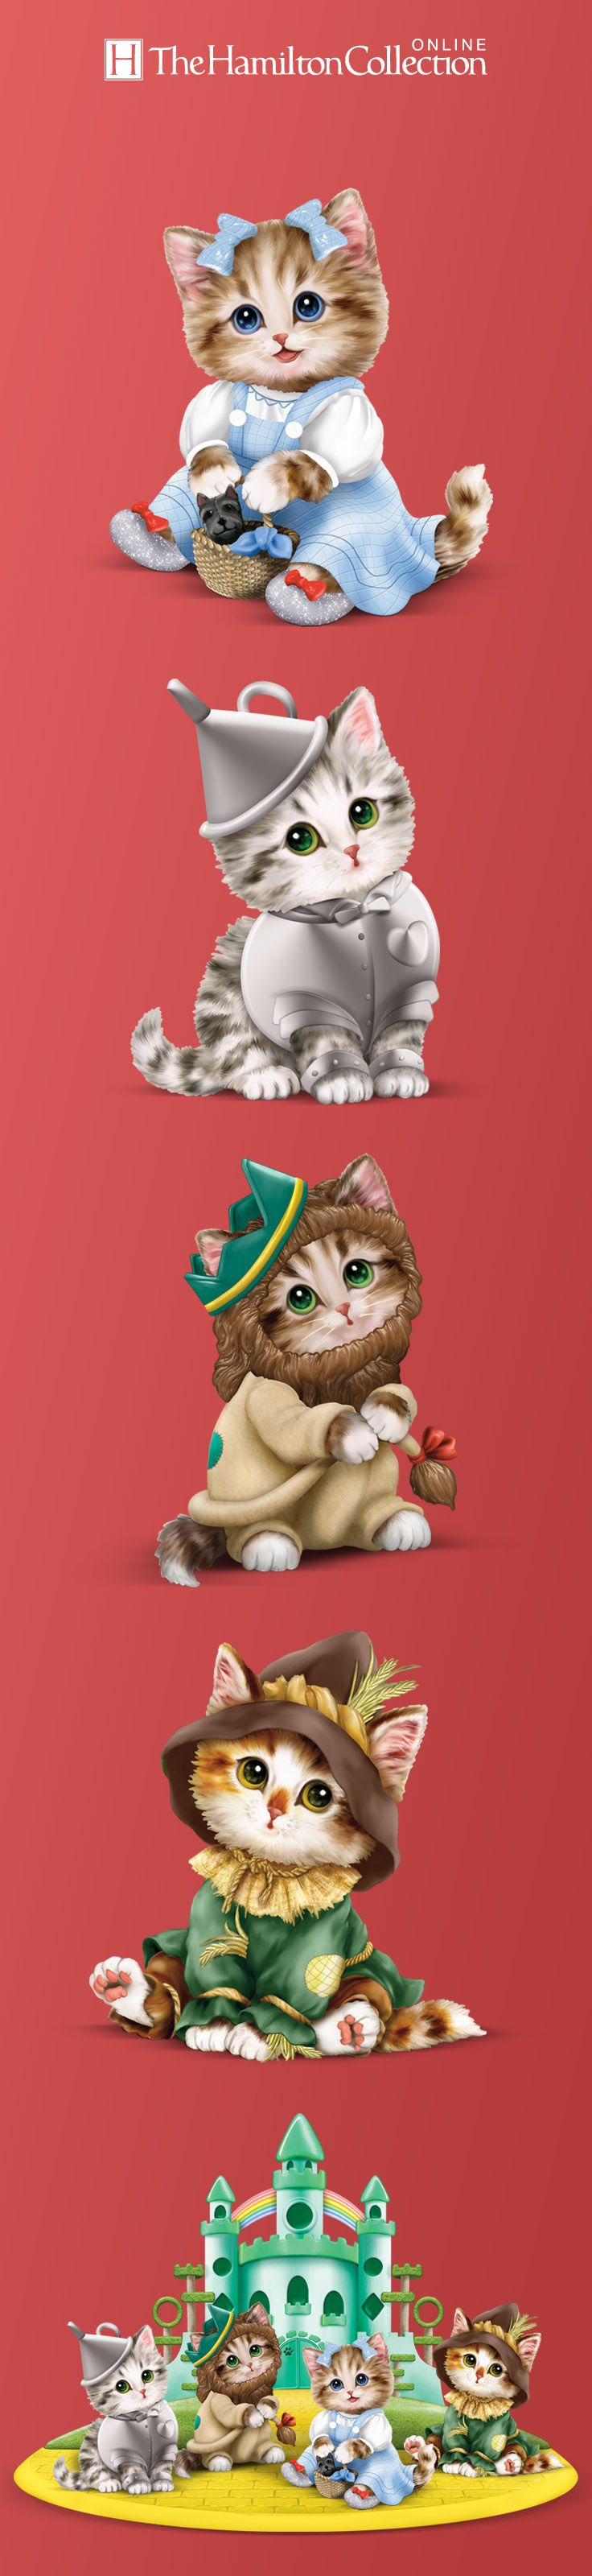 It's the wonderful kitties of Oz! Dressed as your favorite characters from The Wonderful Wizard of Oz, these adorable kitten figurines even have their own Emerald City display.